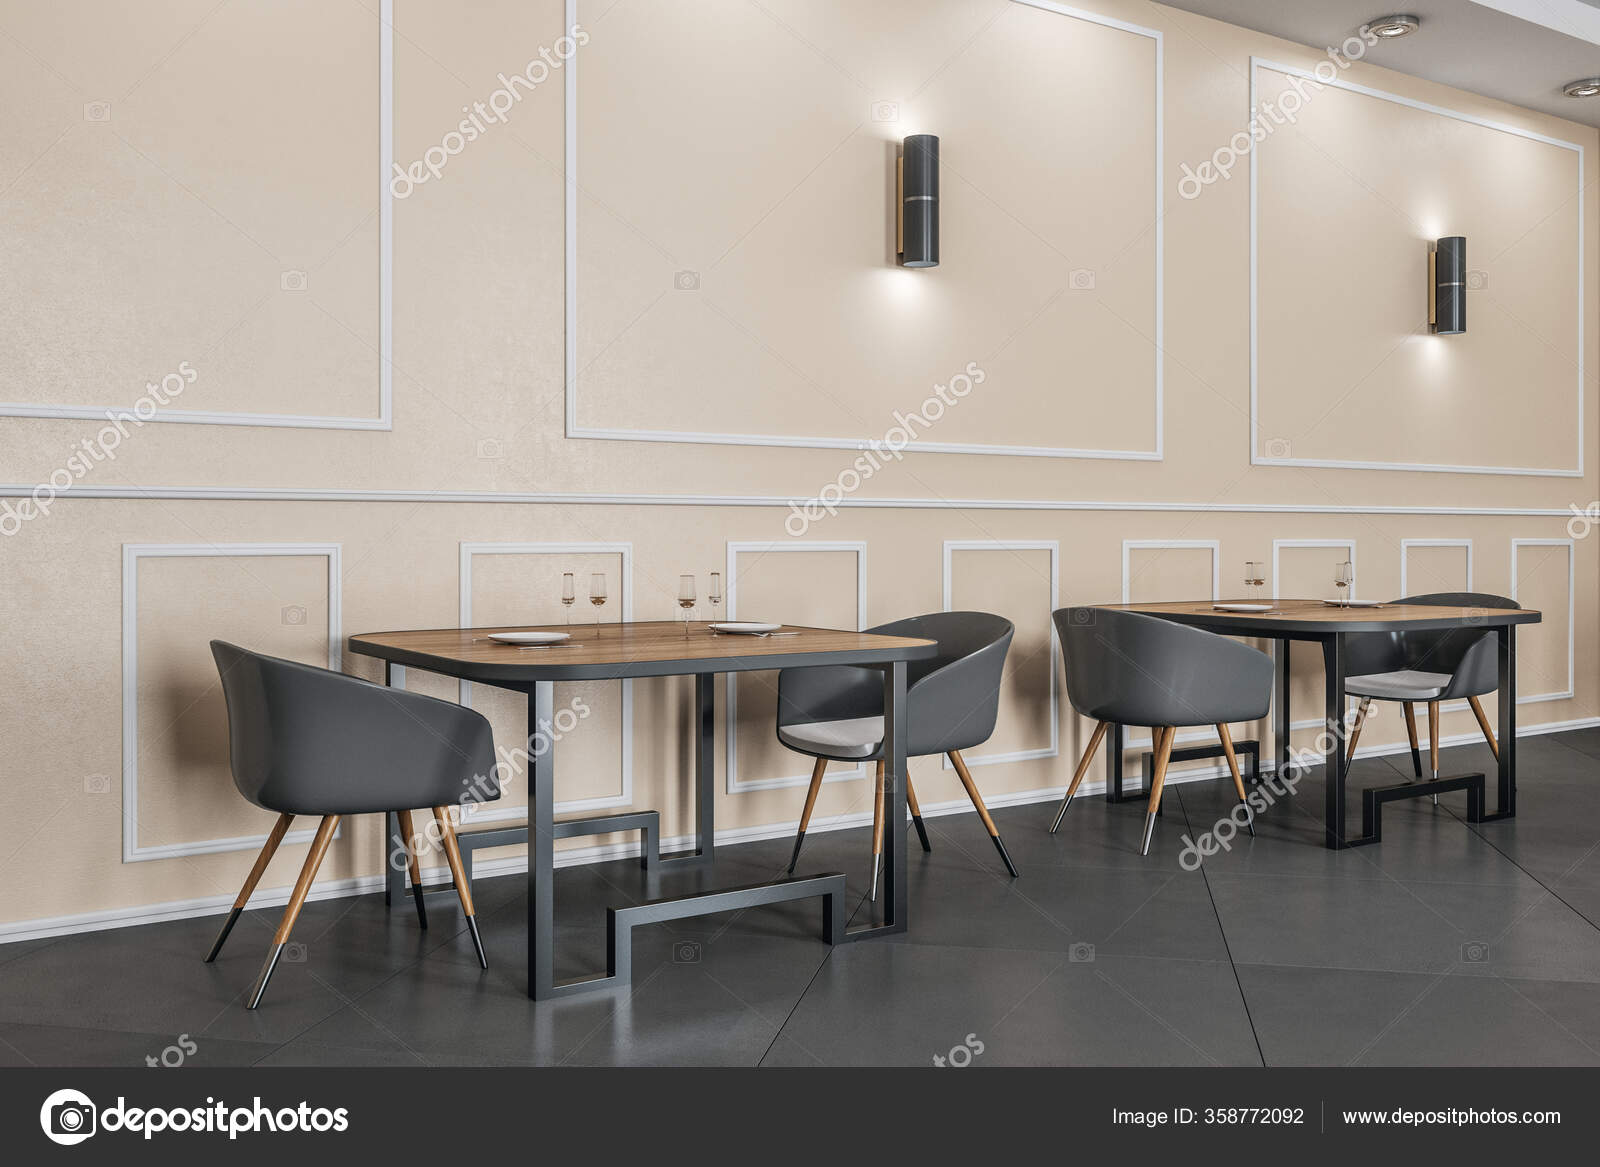 Minimalistic Cafe Room Dishware Copy Space Wall Cafe Restaurant Concept Stock Photo C Peshkov 358772092